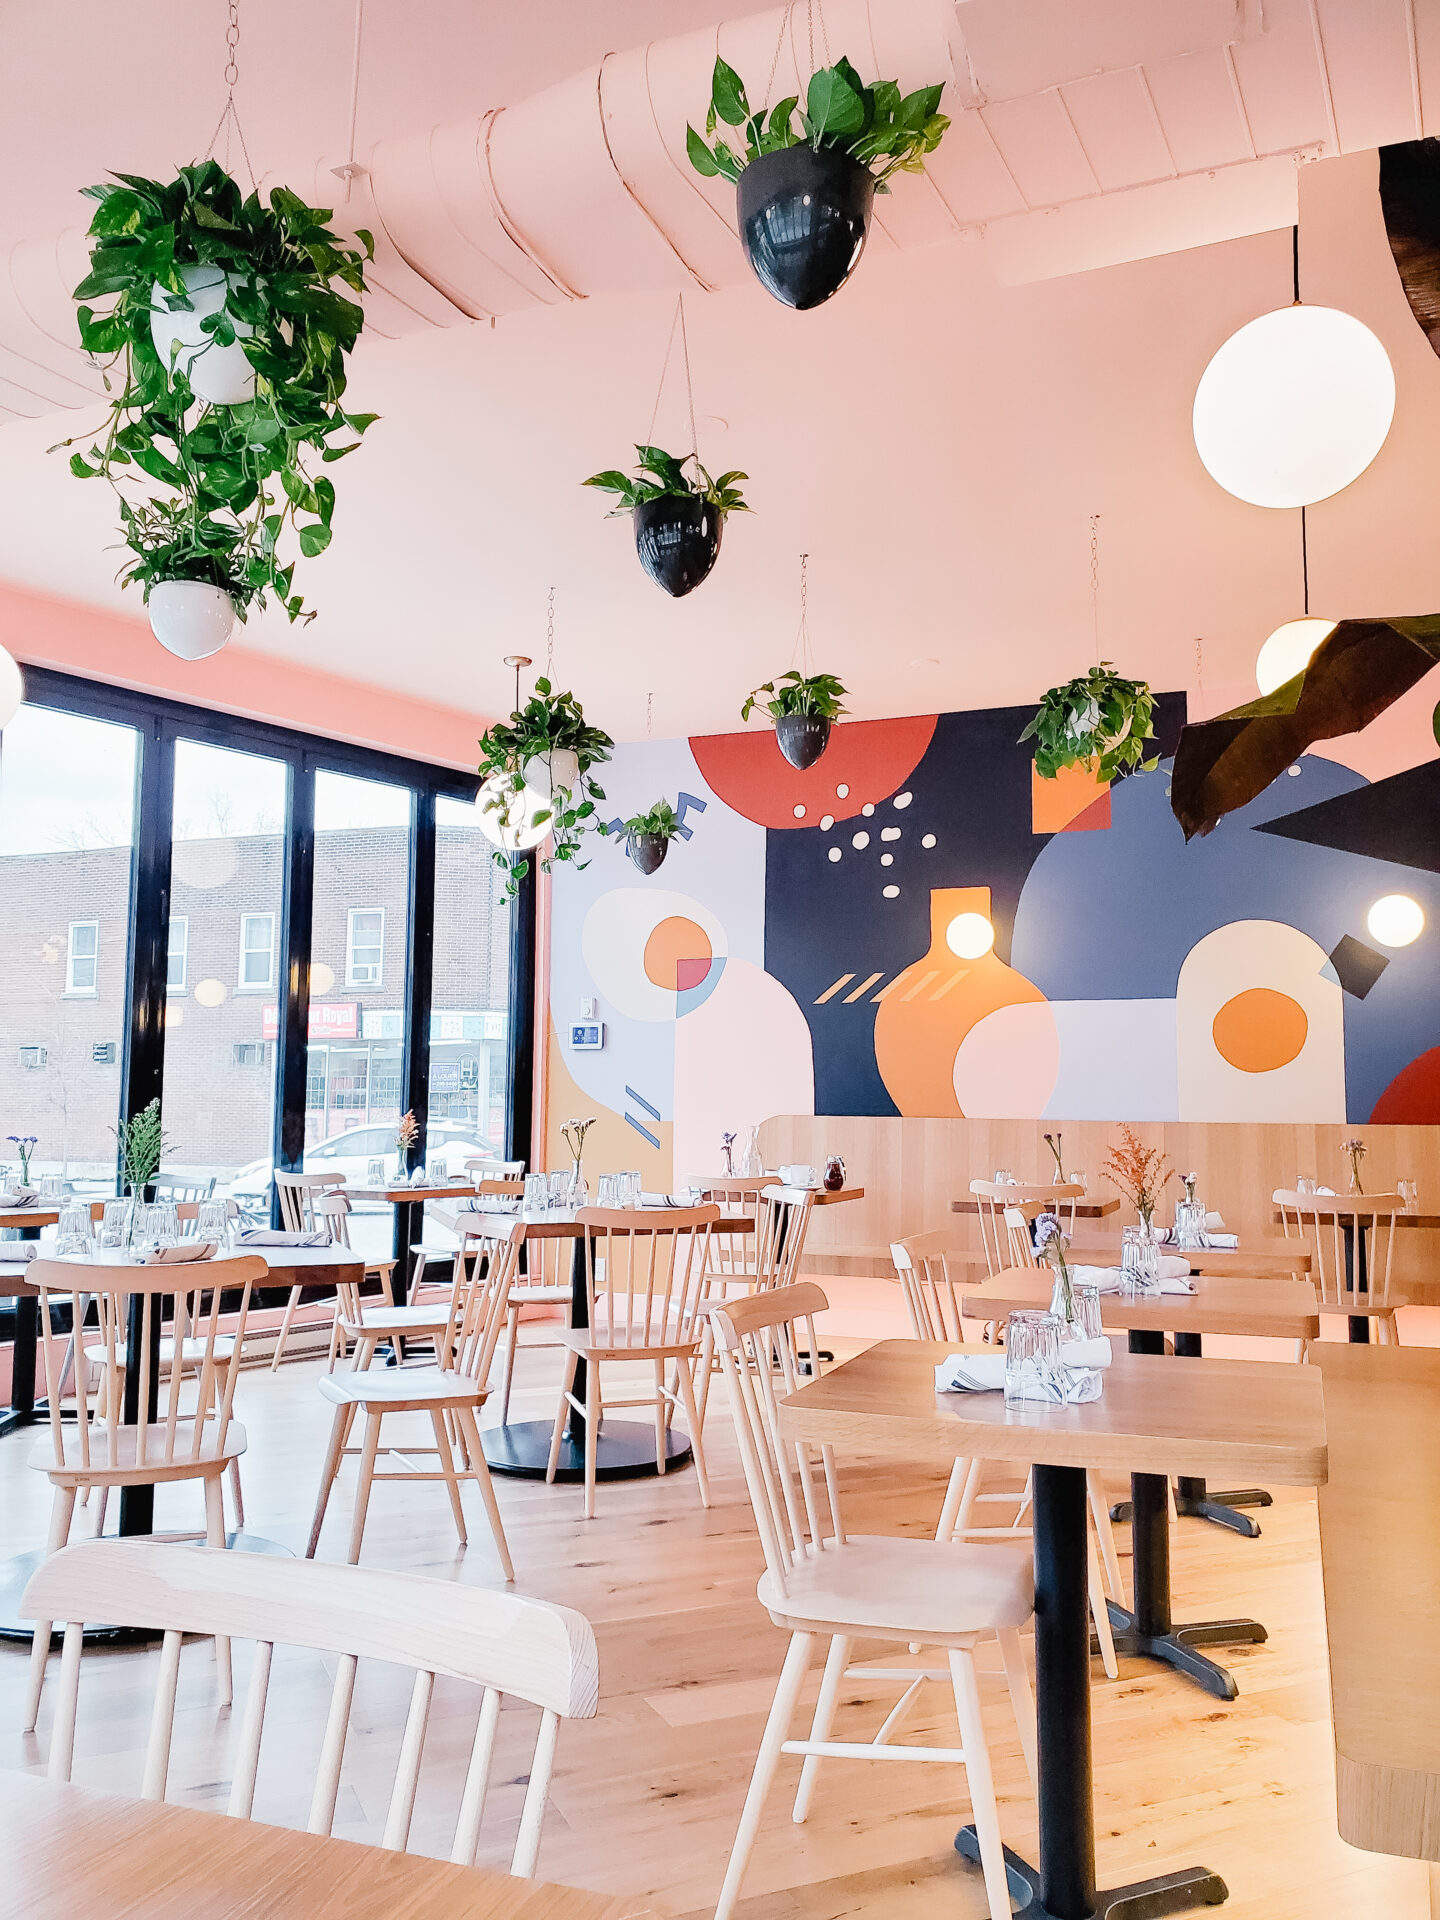 New cute places in Montreal